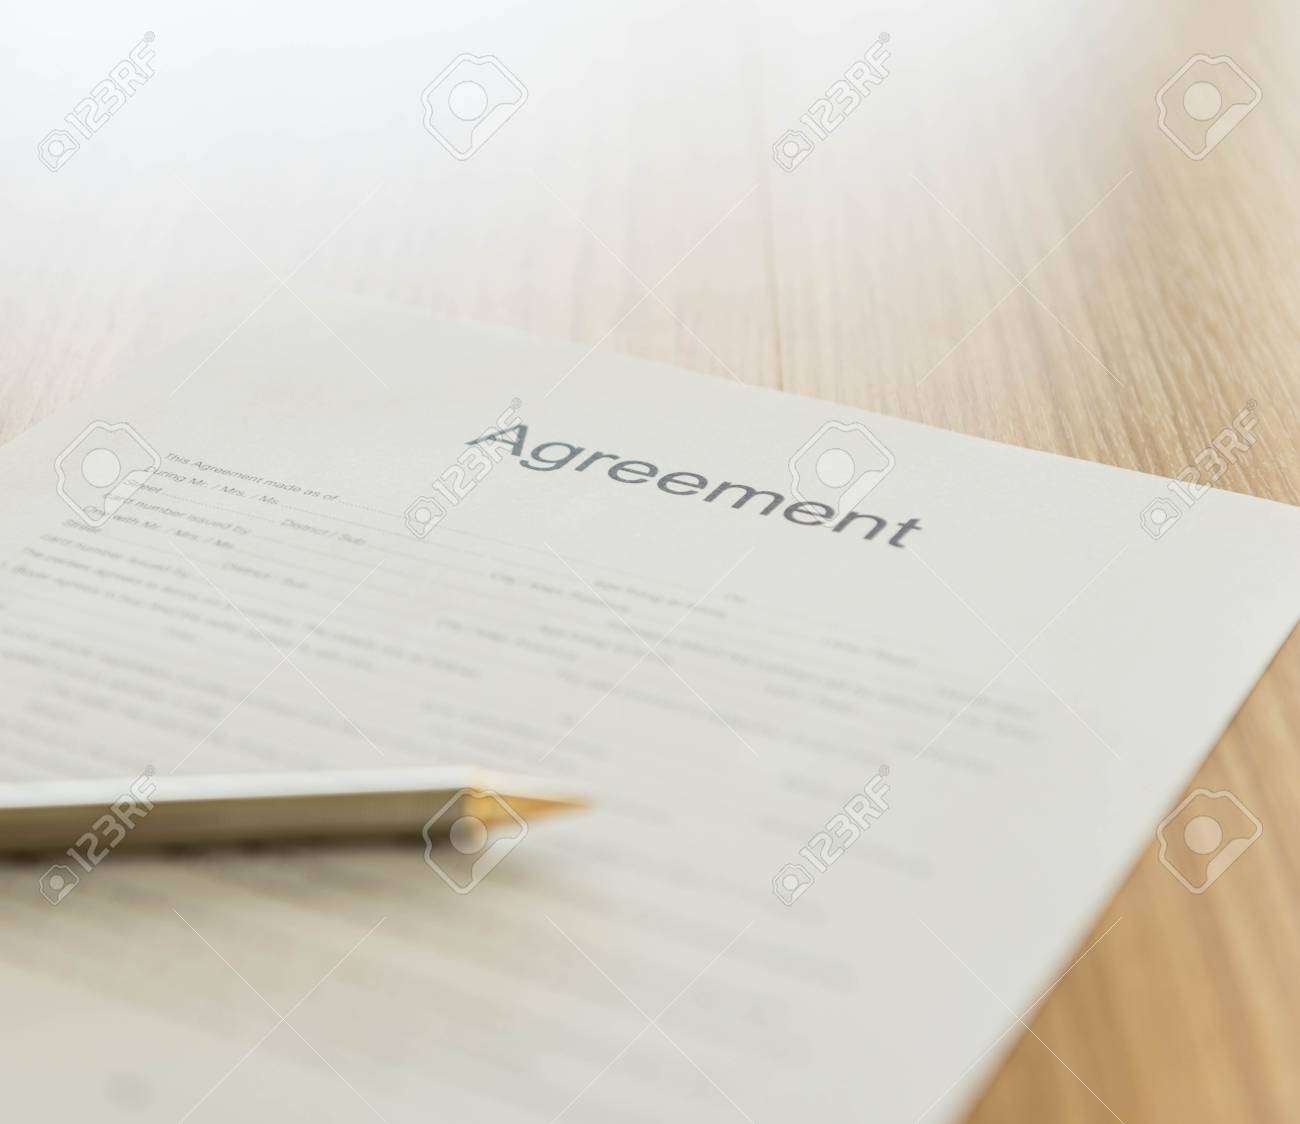 Closeup The Words Agreement On Formal Paper. Agreement Concept Stock ...